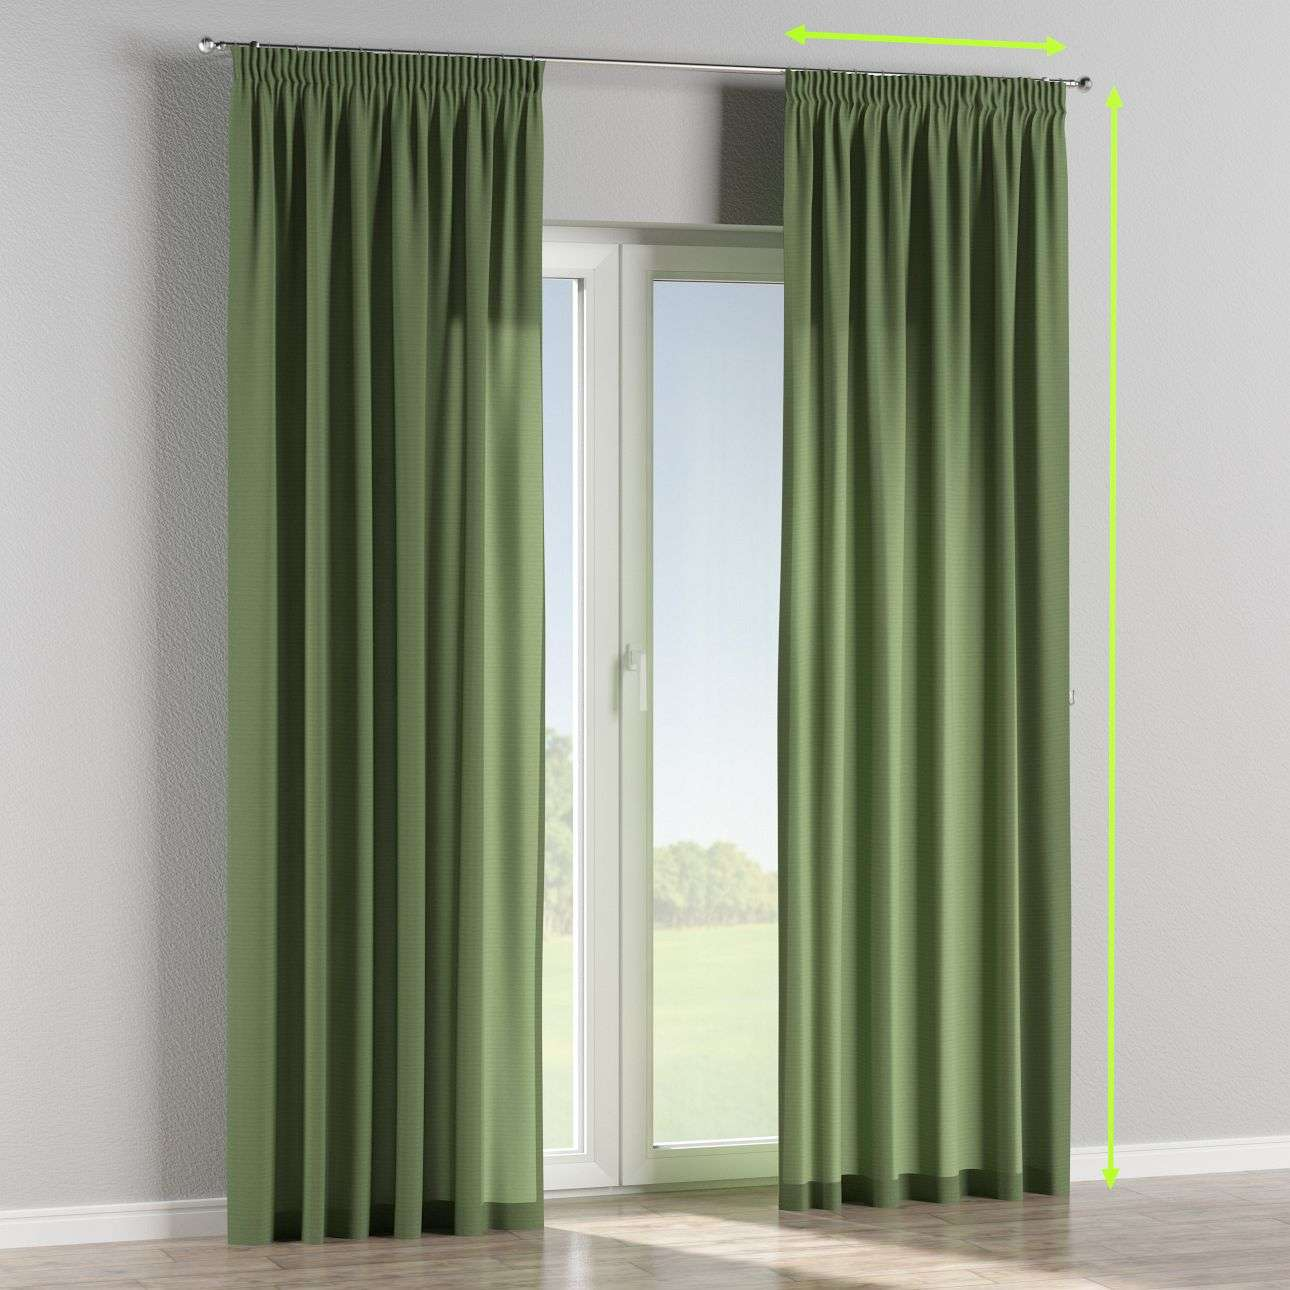 Pencil pleat lined curtains in collection Jupiter, fabric: 127-52